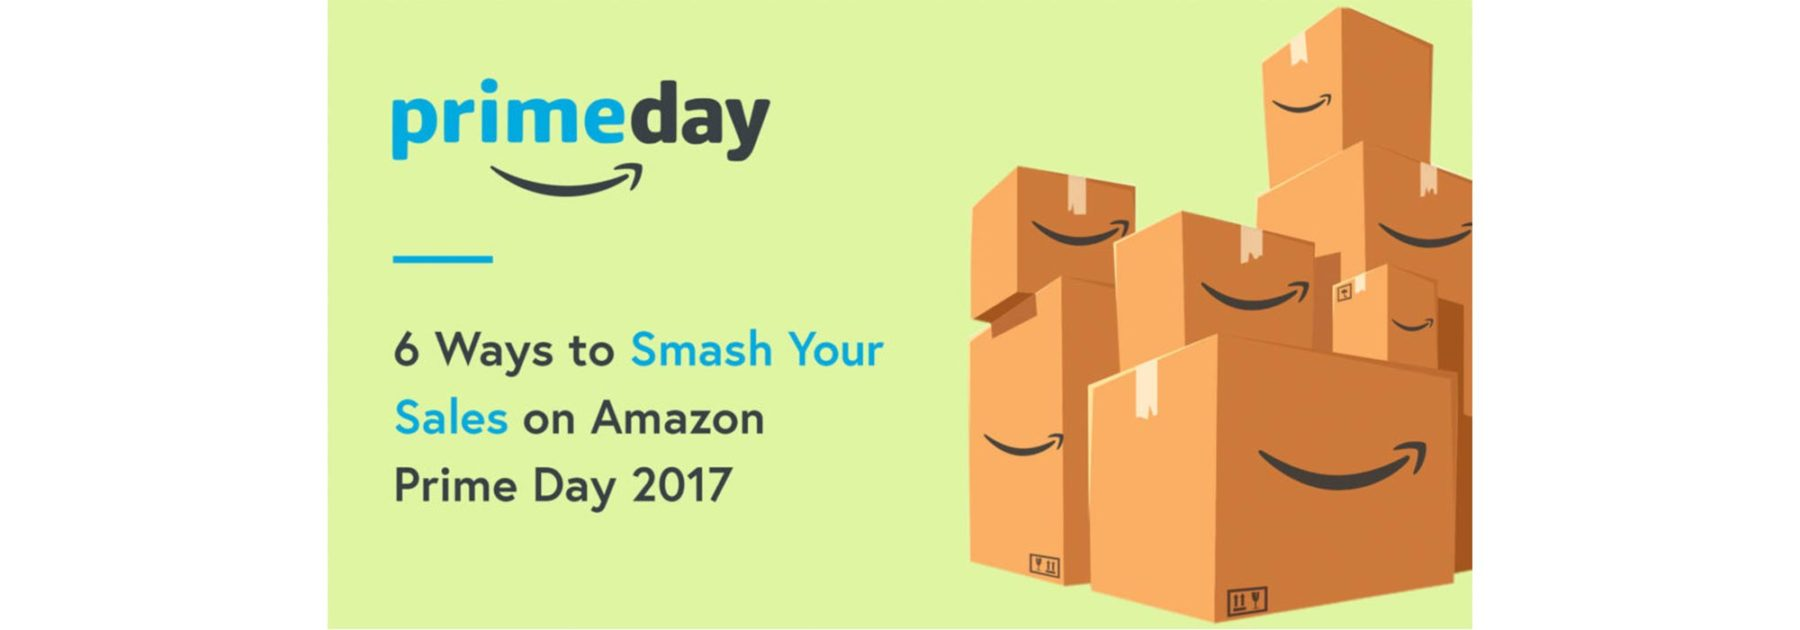 Blog: 6 Ways to Smash your Sales on Amazon Prime Day 2017